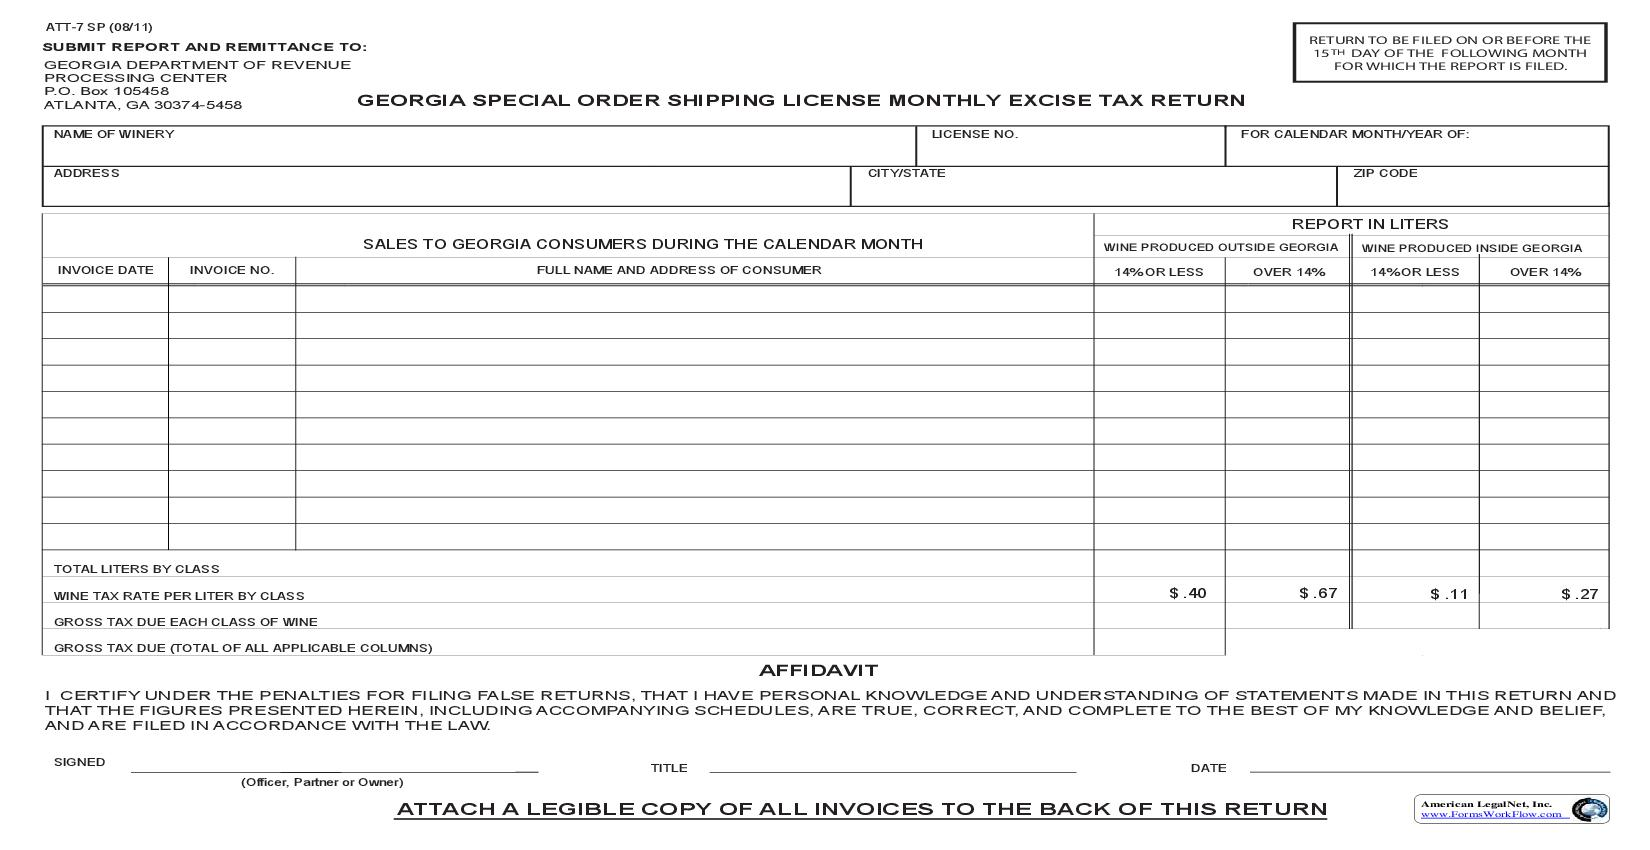 Georgia Special Order Shipping License Monthly Excise Tax Return {ATT-7SP} | Pdf Fpdf Doc Docx | Georgia